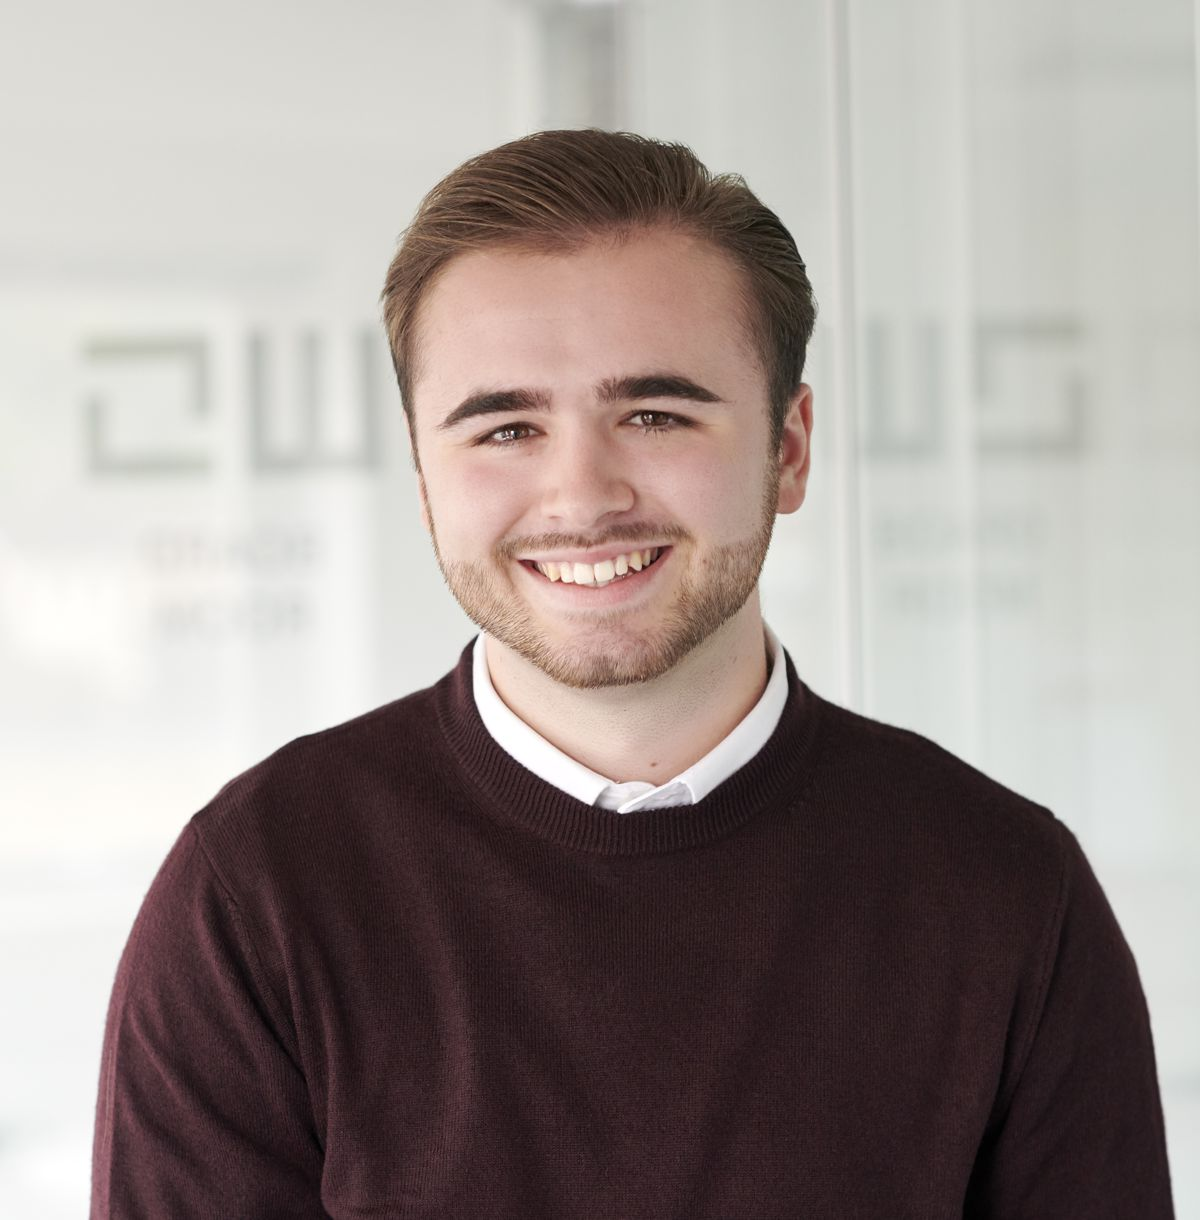 Max Rayner, who won the award, is a level six apprentice studying for a BA (Hons) Architecture at LSBU, while employed as an Architectural Assistant by urban planning and architecture consultancy, Woods Sanders & Co Ltd.